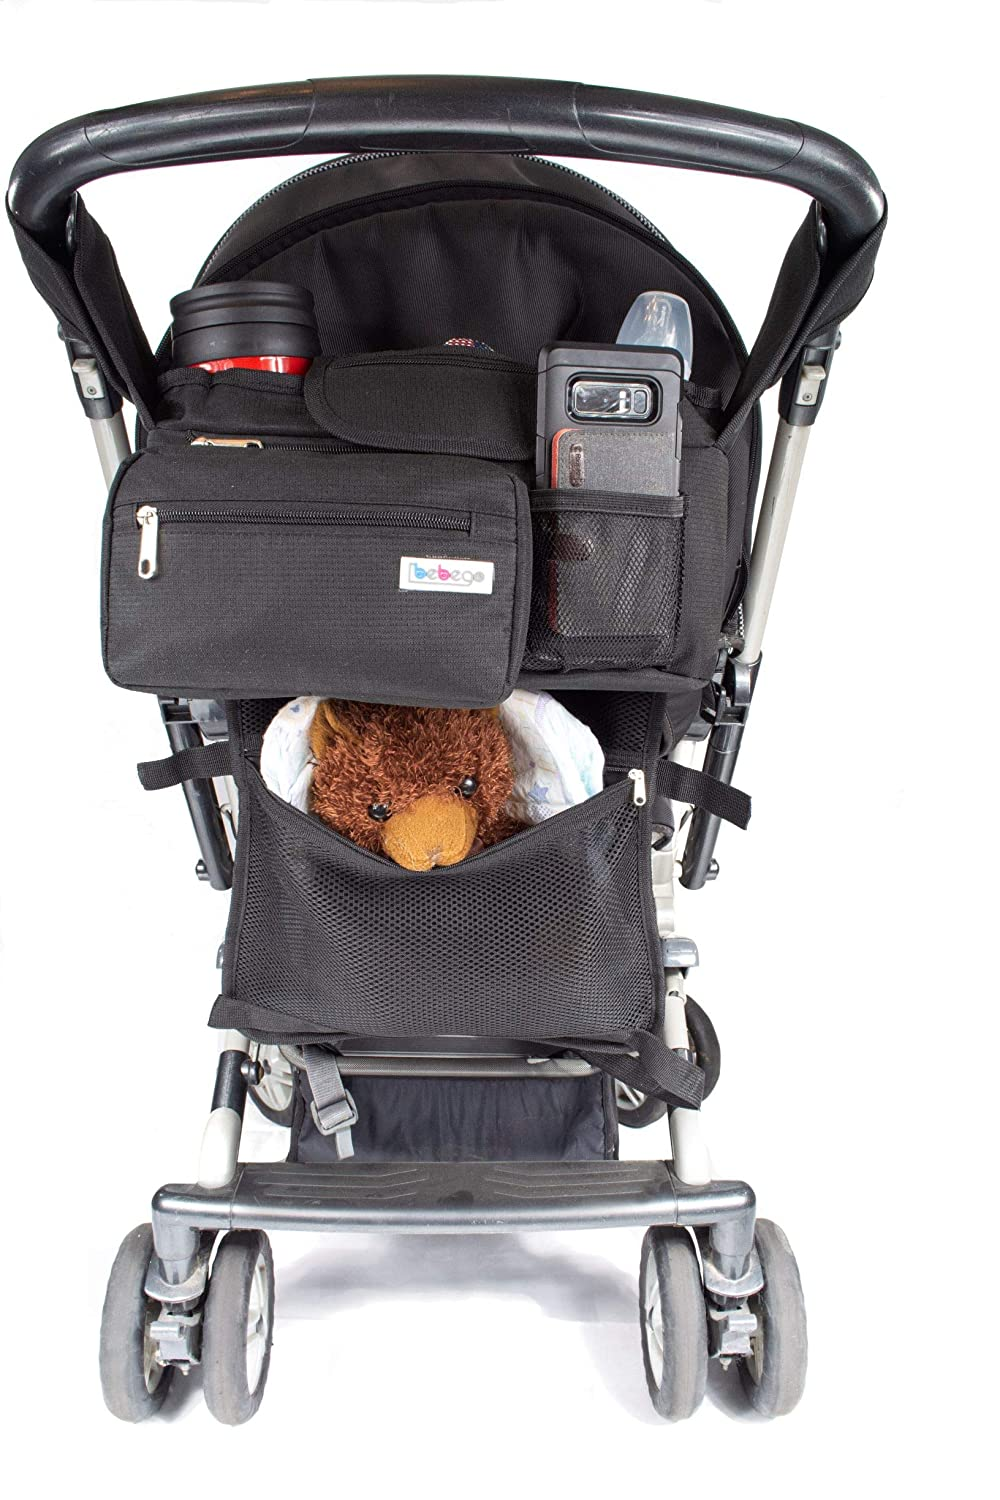 BebeGo Stroller Organizer with Cup Holder and Diaper Storage Detachable Baby Changing Mat and Extra Storage